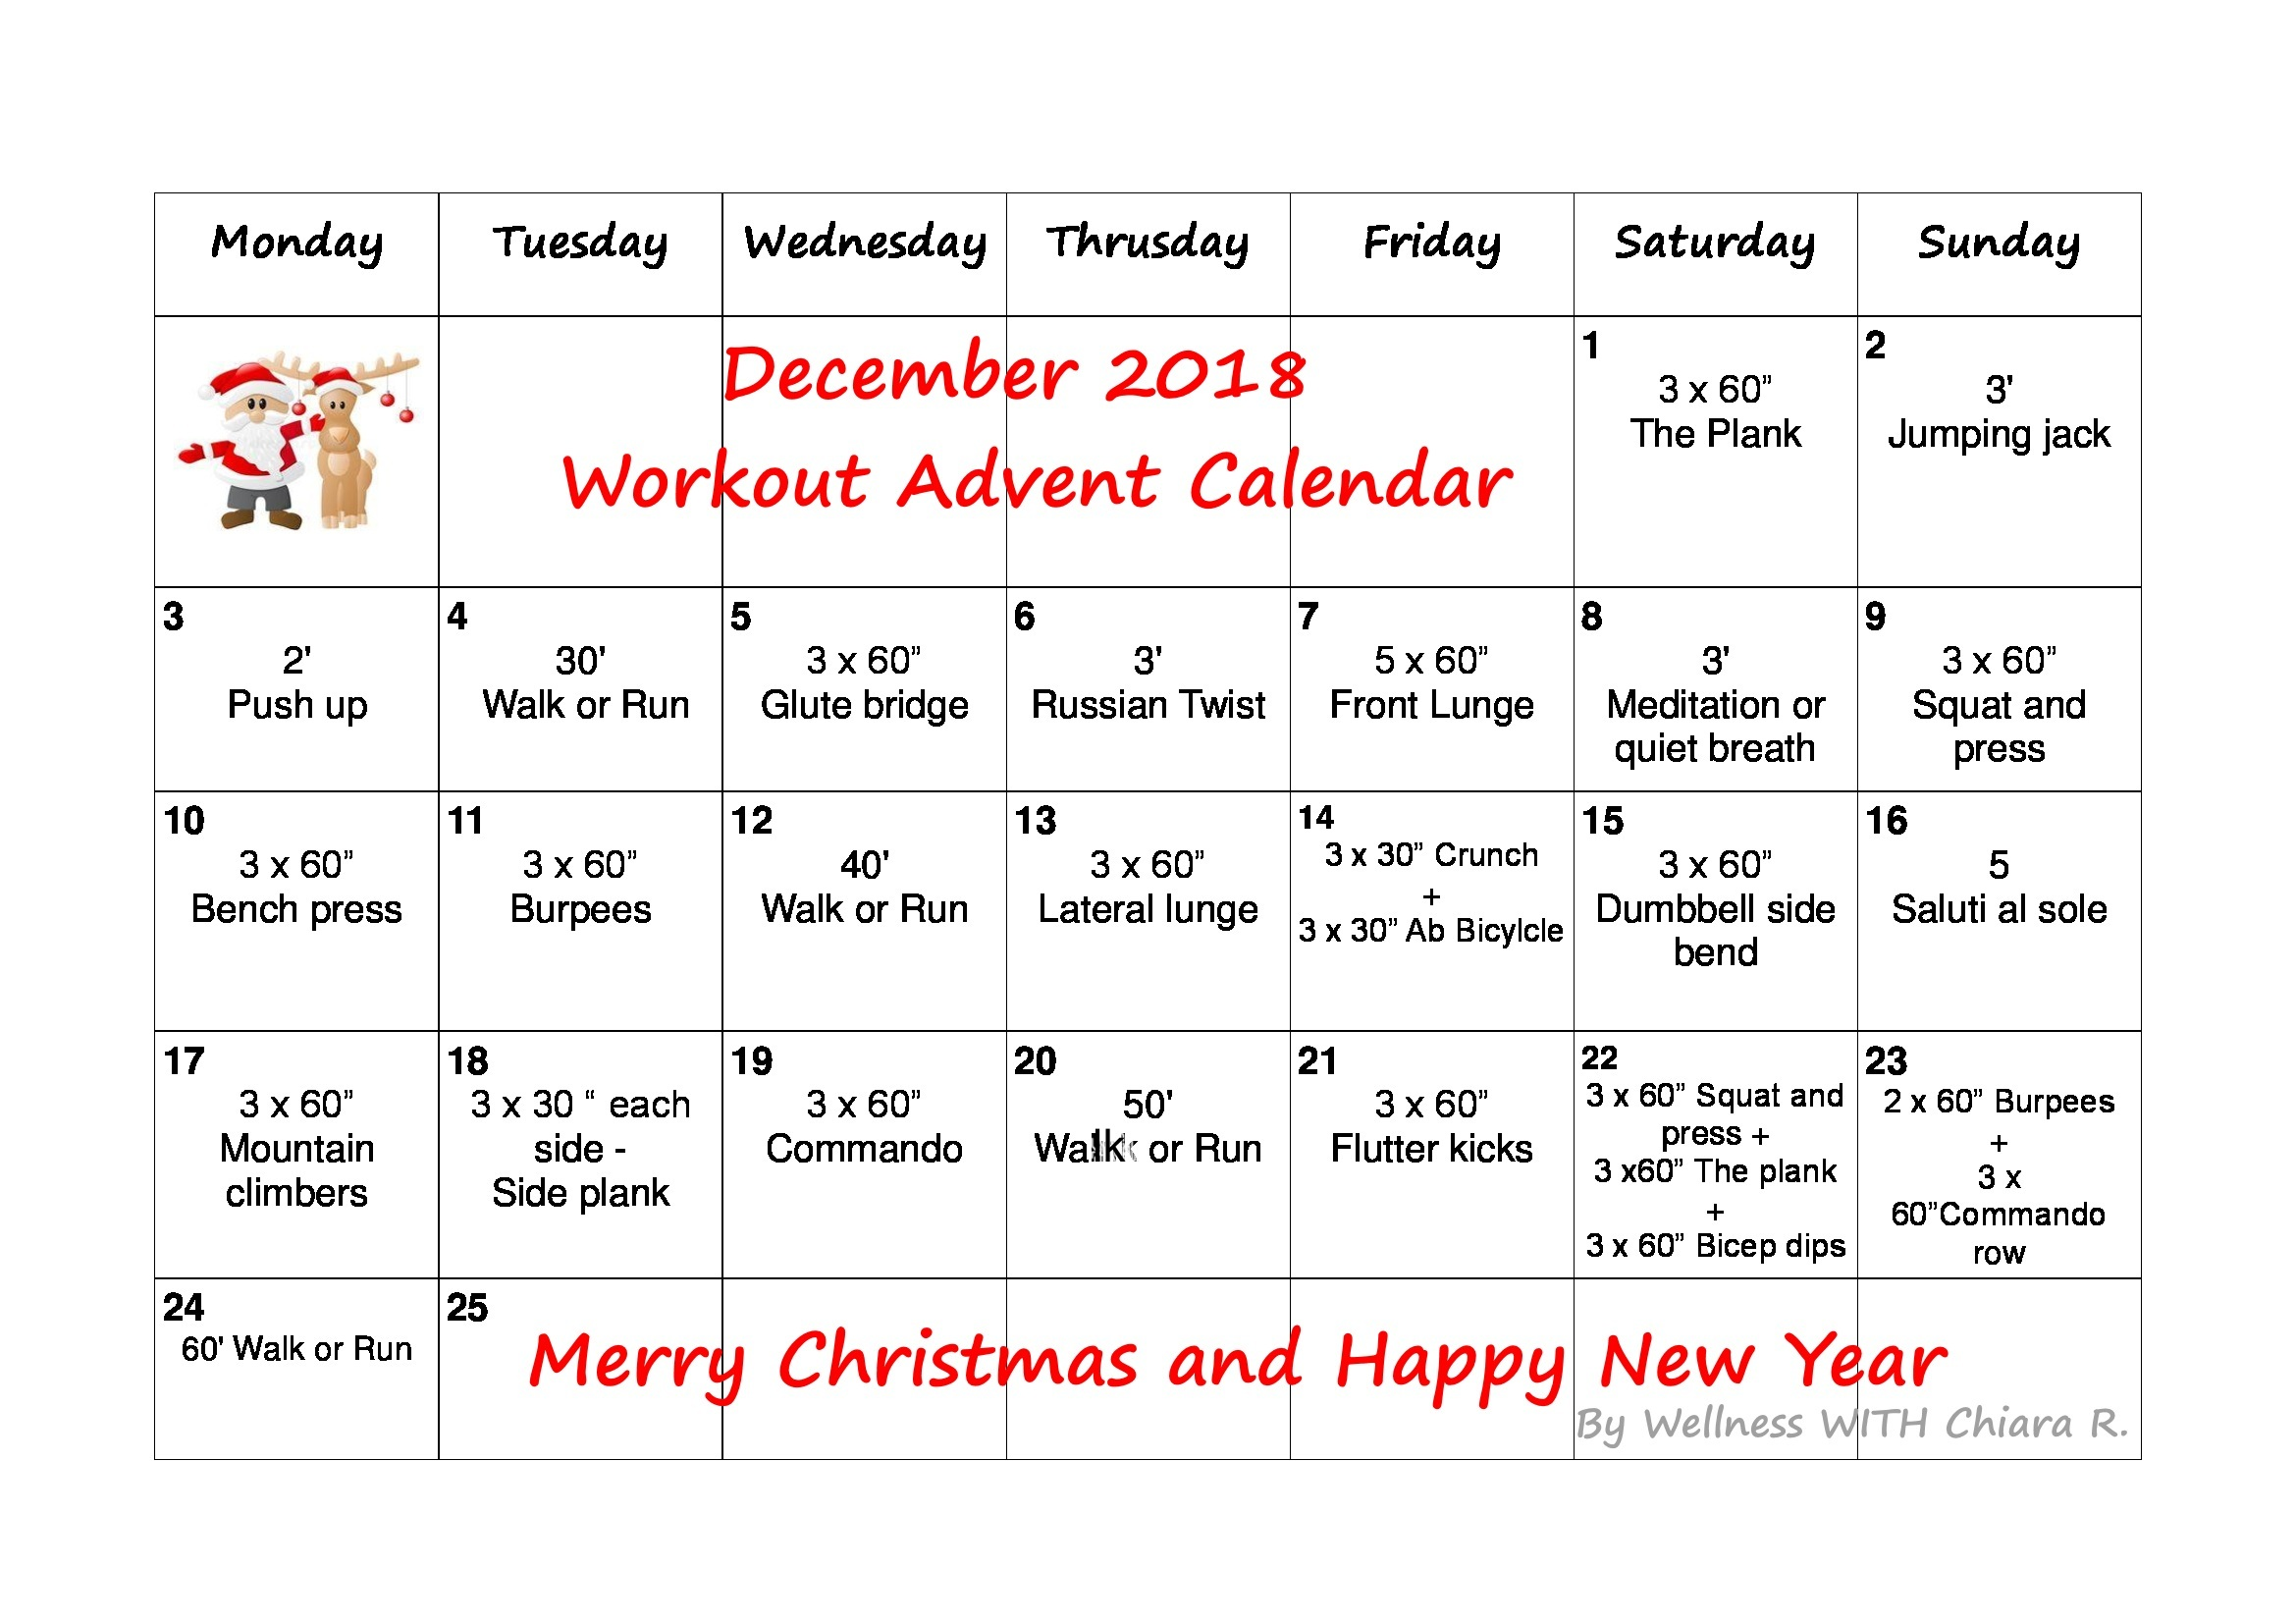 December 2018 Workout Advent Calendar